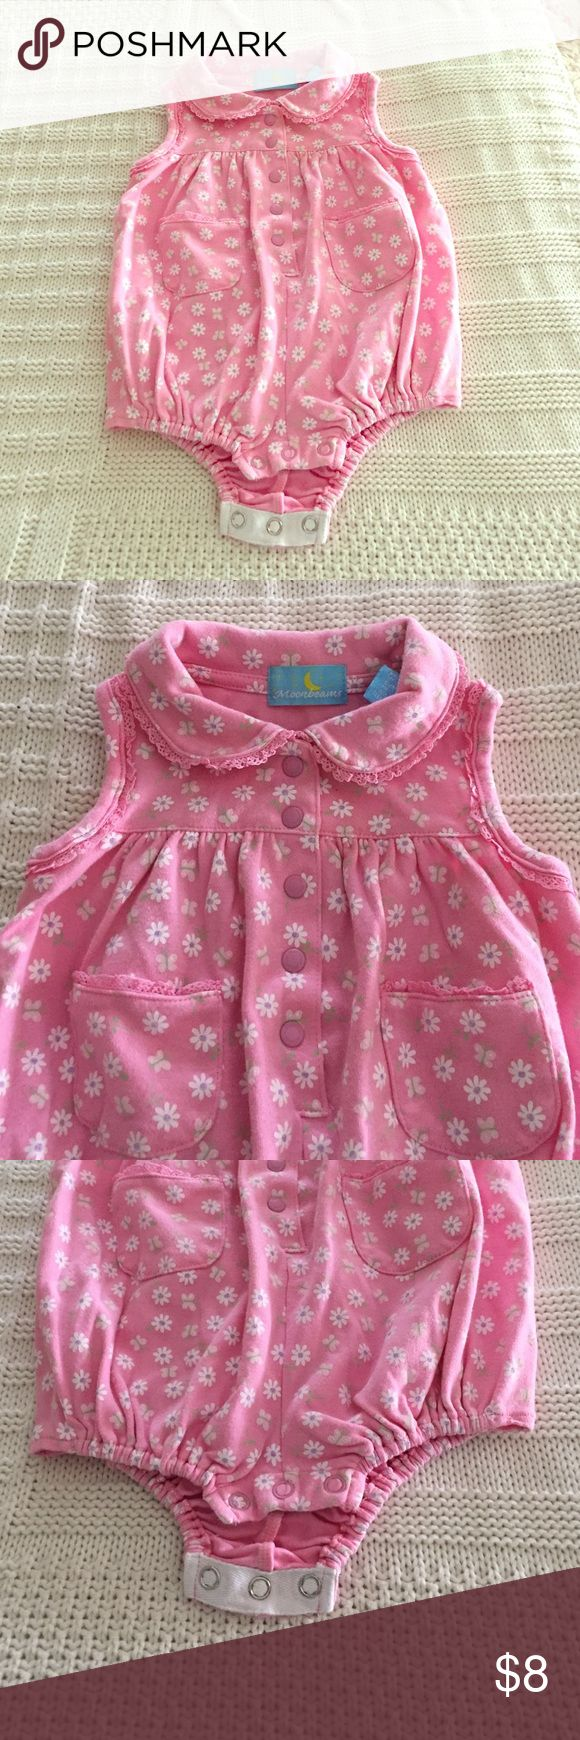 Pink Bubble Style Playsuit Pink bubble style playsuit in thick cotton featuring a floral and butterfly pattern, a button front placket, button bottom and a sweet little collar on this sleeveless suit. Front pockets, ruffle detail. Excellent condition. So cute for your baby girl! Moonbeams One Pieces Bodysuits